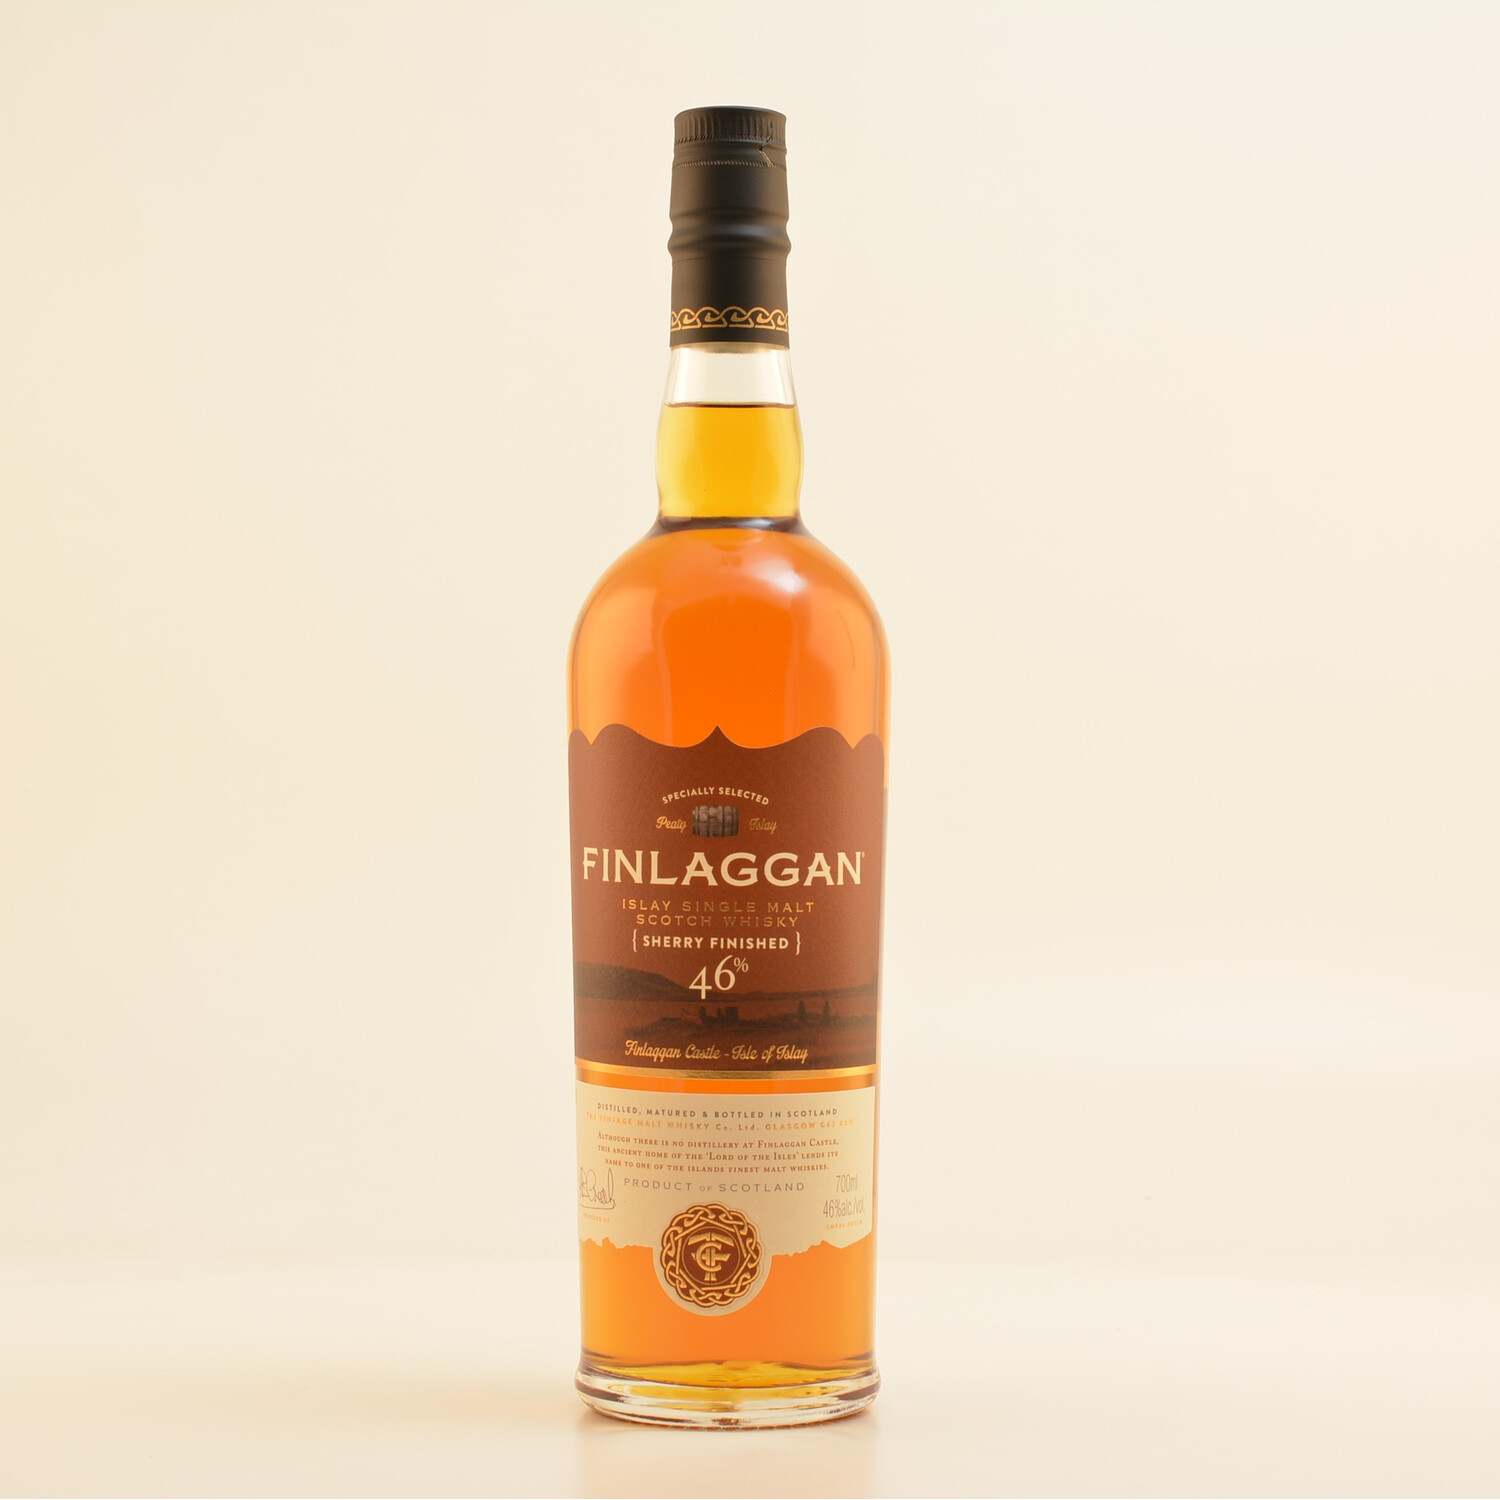 Finlaggan Sherry Wood Finish Whisky 46% 0,7l (57,00 € pro 1 l)